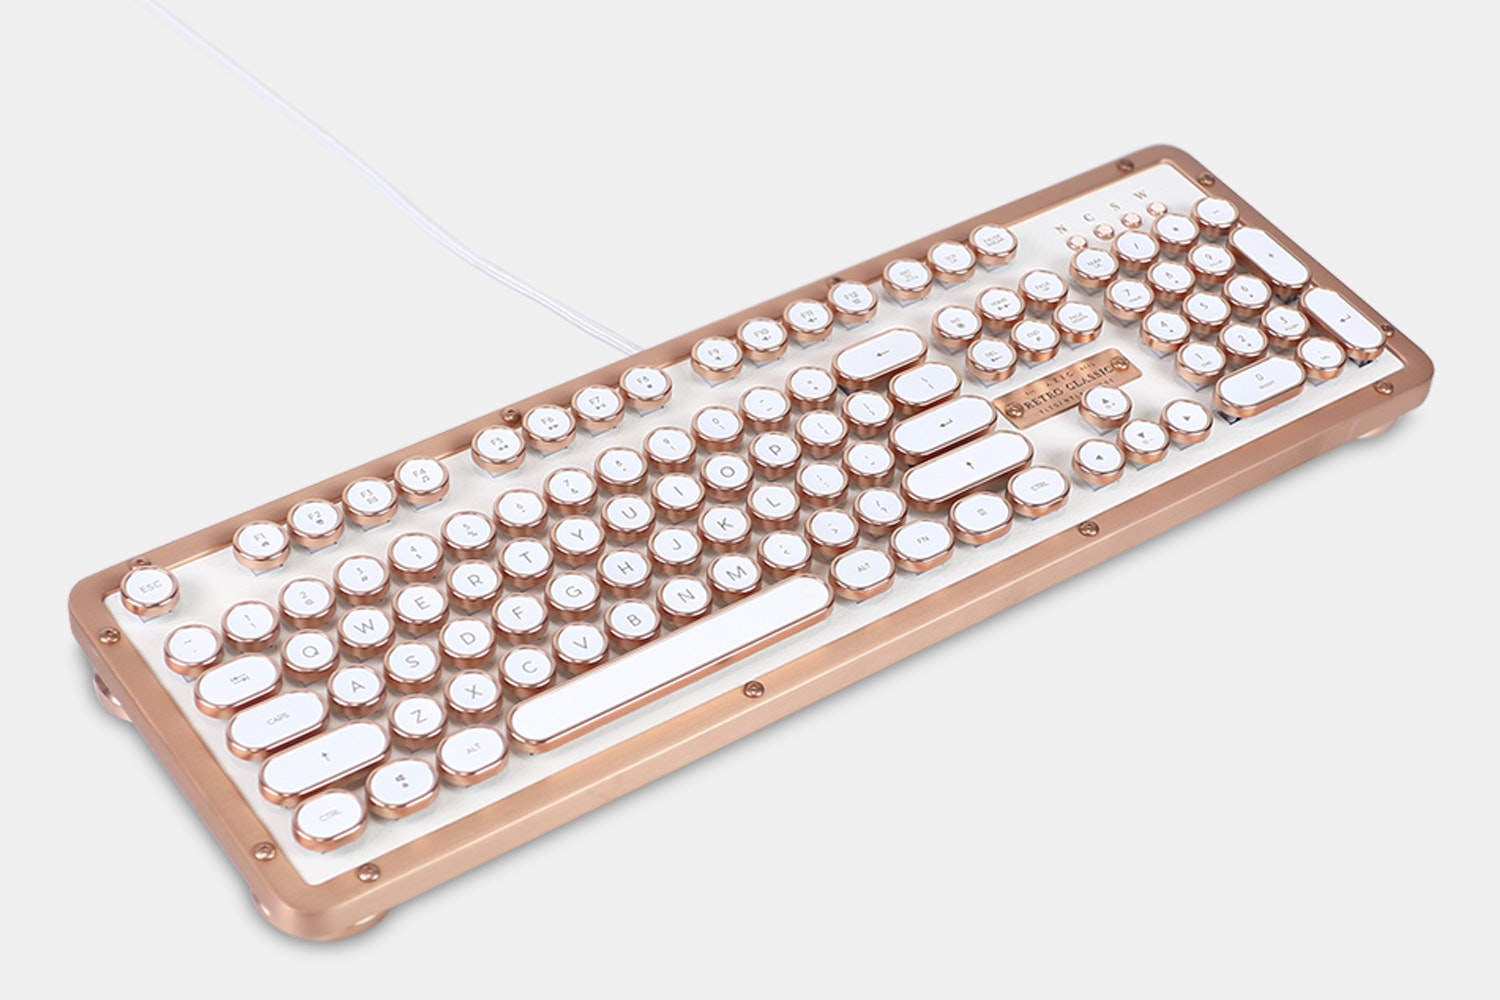 Azio Retro Classic Leather Mechanical Keyboard